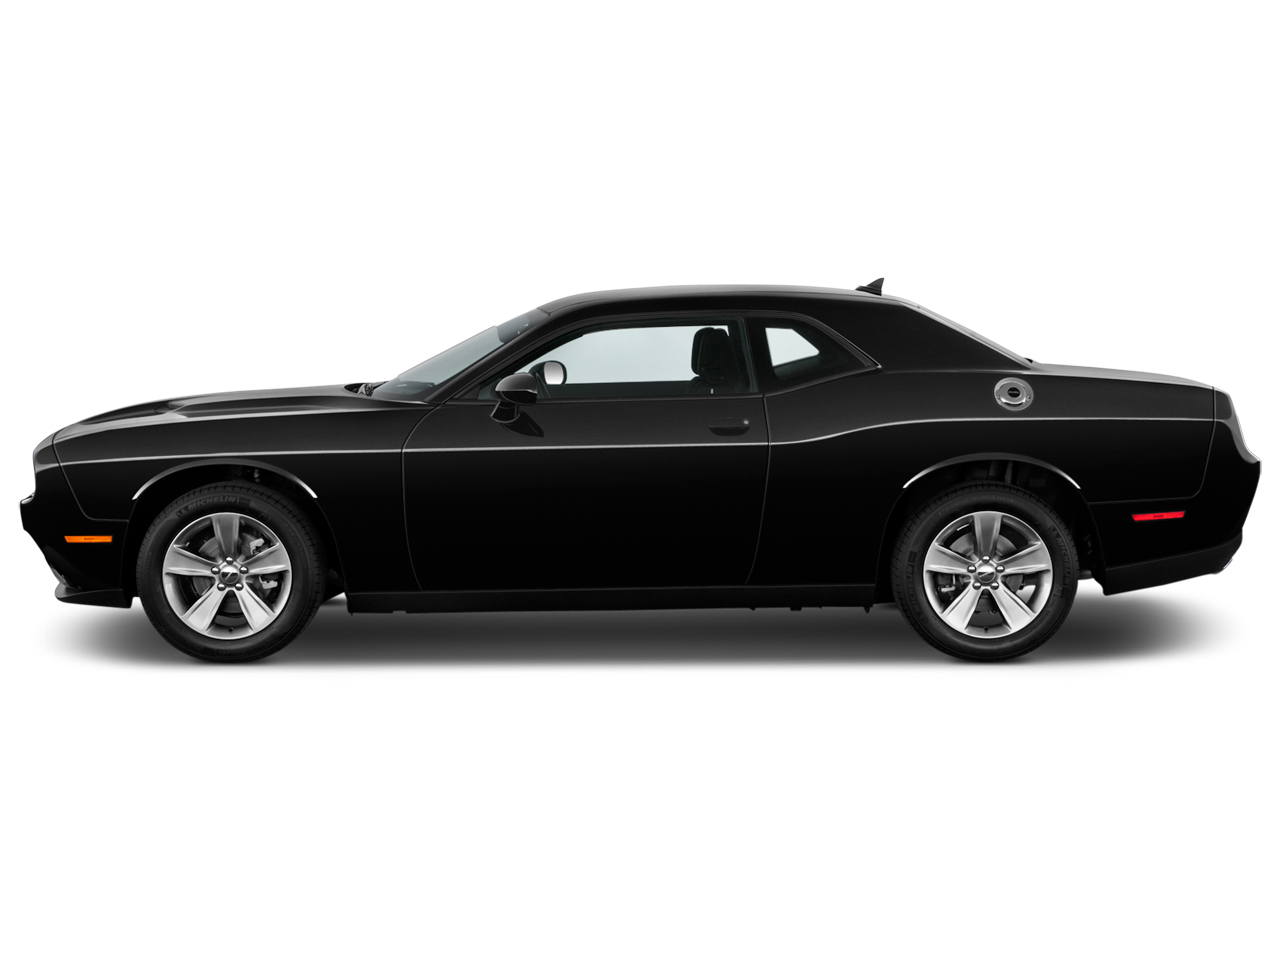 Subaru Kansas City >> New and Used Dodge Challenger: Prices, Photos, Reviews, Specs - The Car Connection